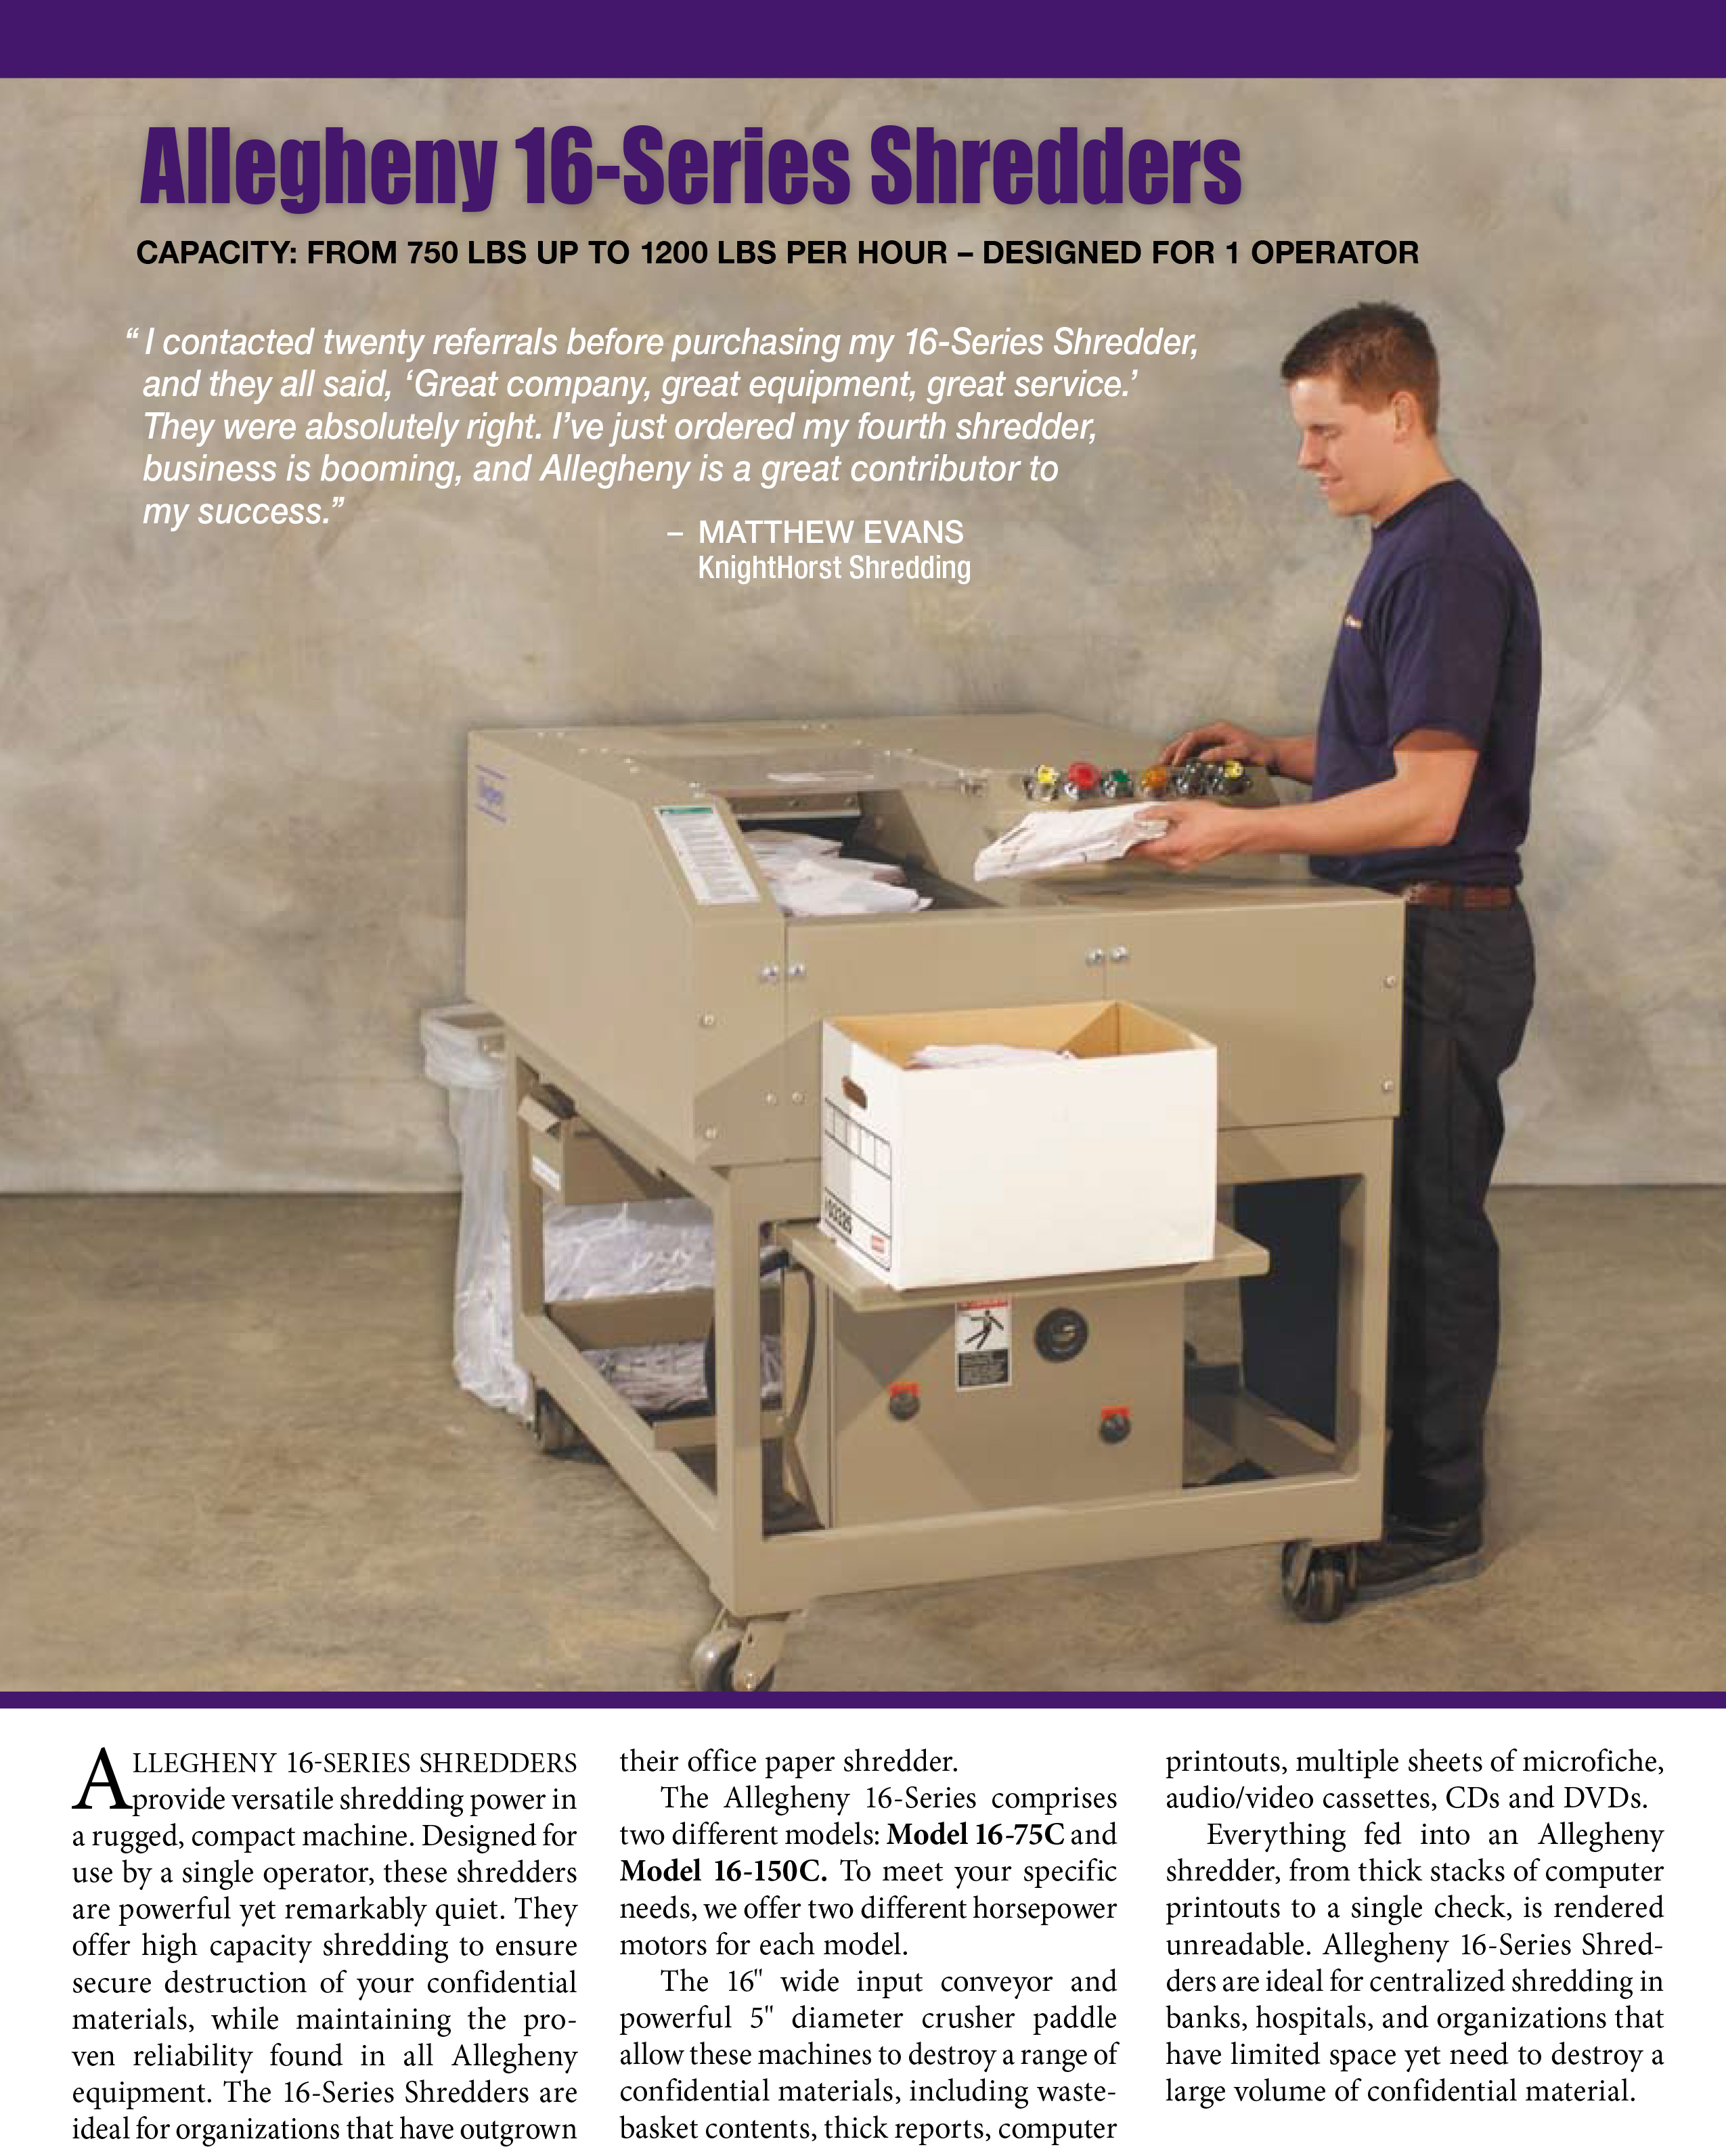 Learn more about the 16 Series Shredders in the Allegheny Brochure.